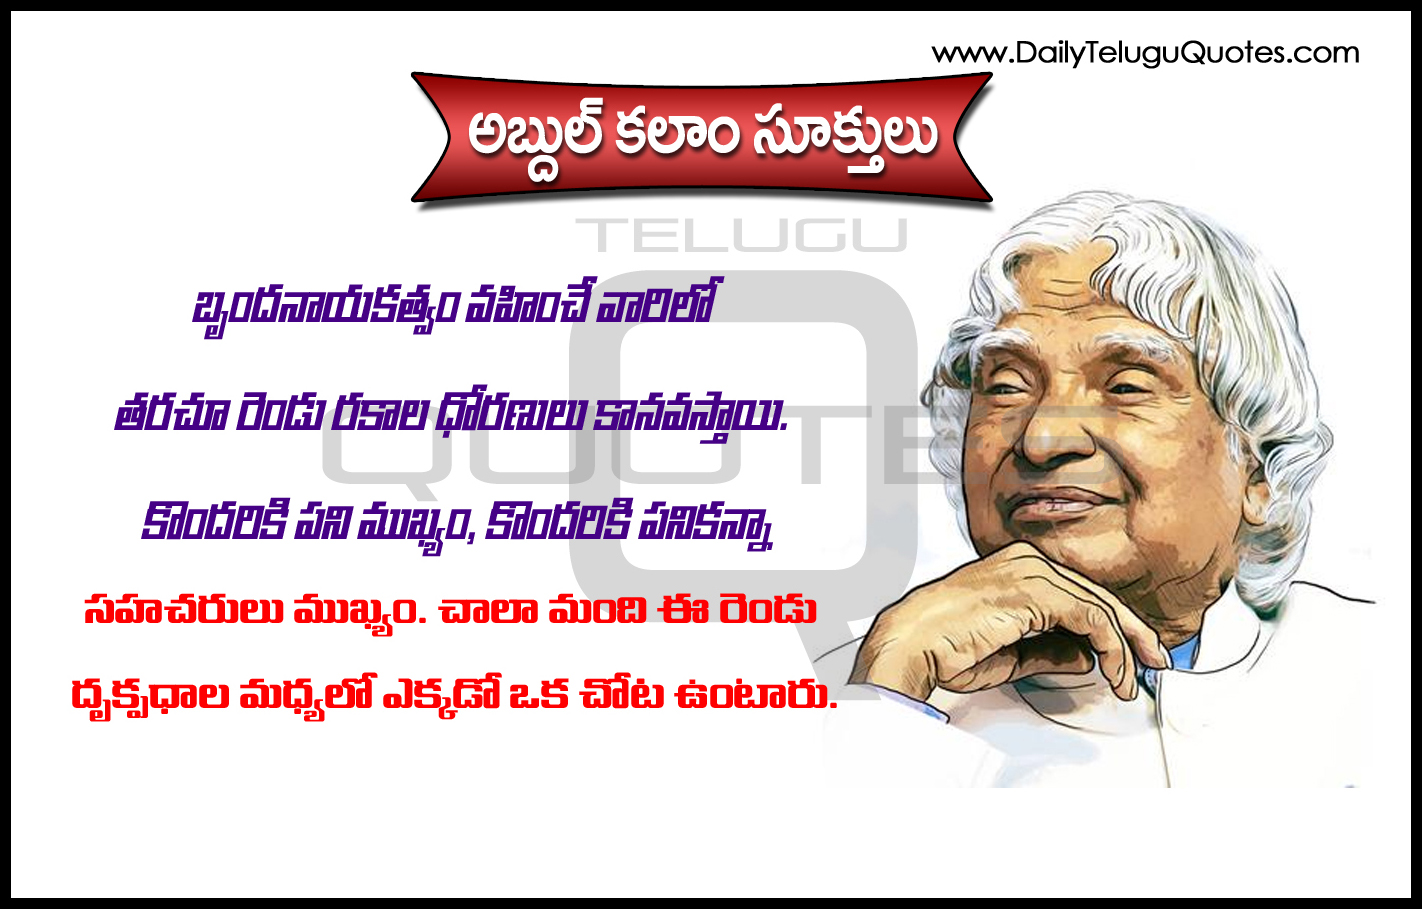 Telugu Quotes About Leadership Qualities And Sayings By Abdul Kalam